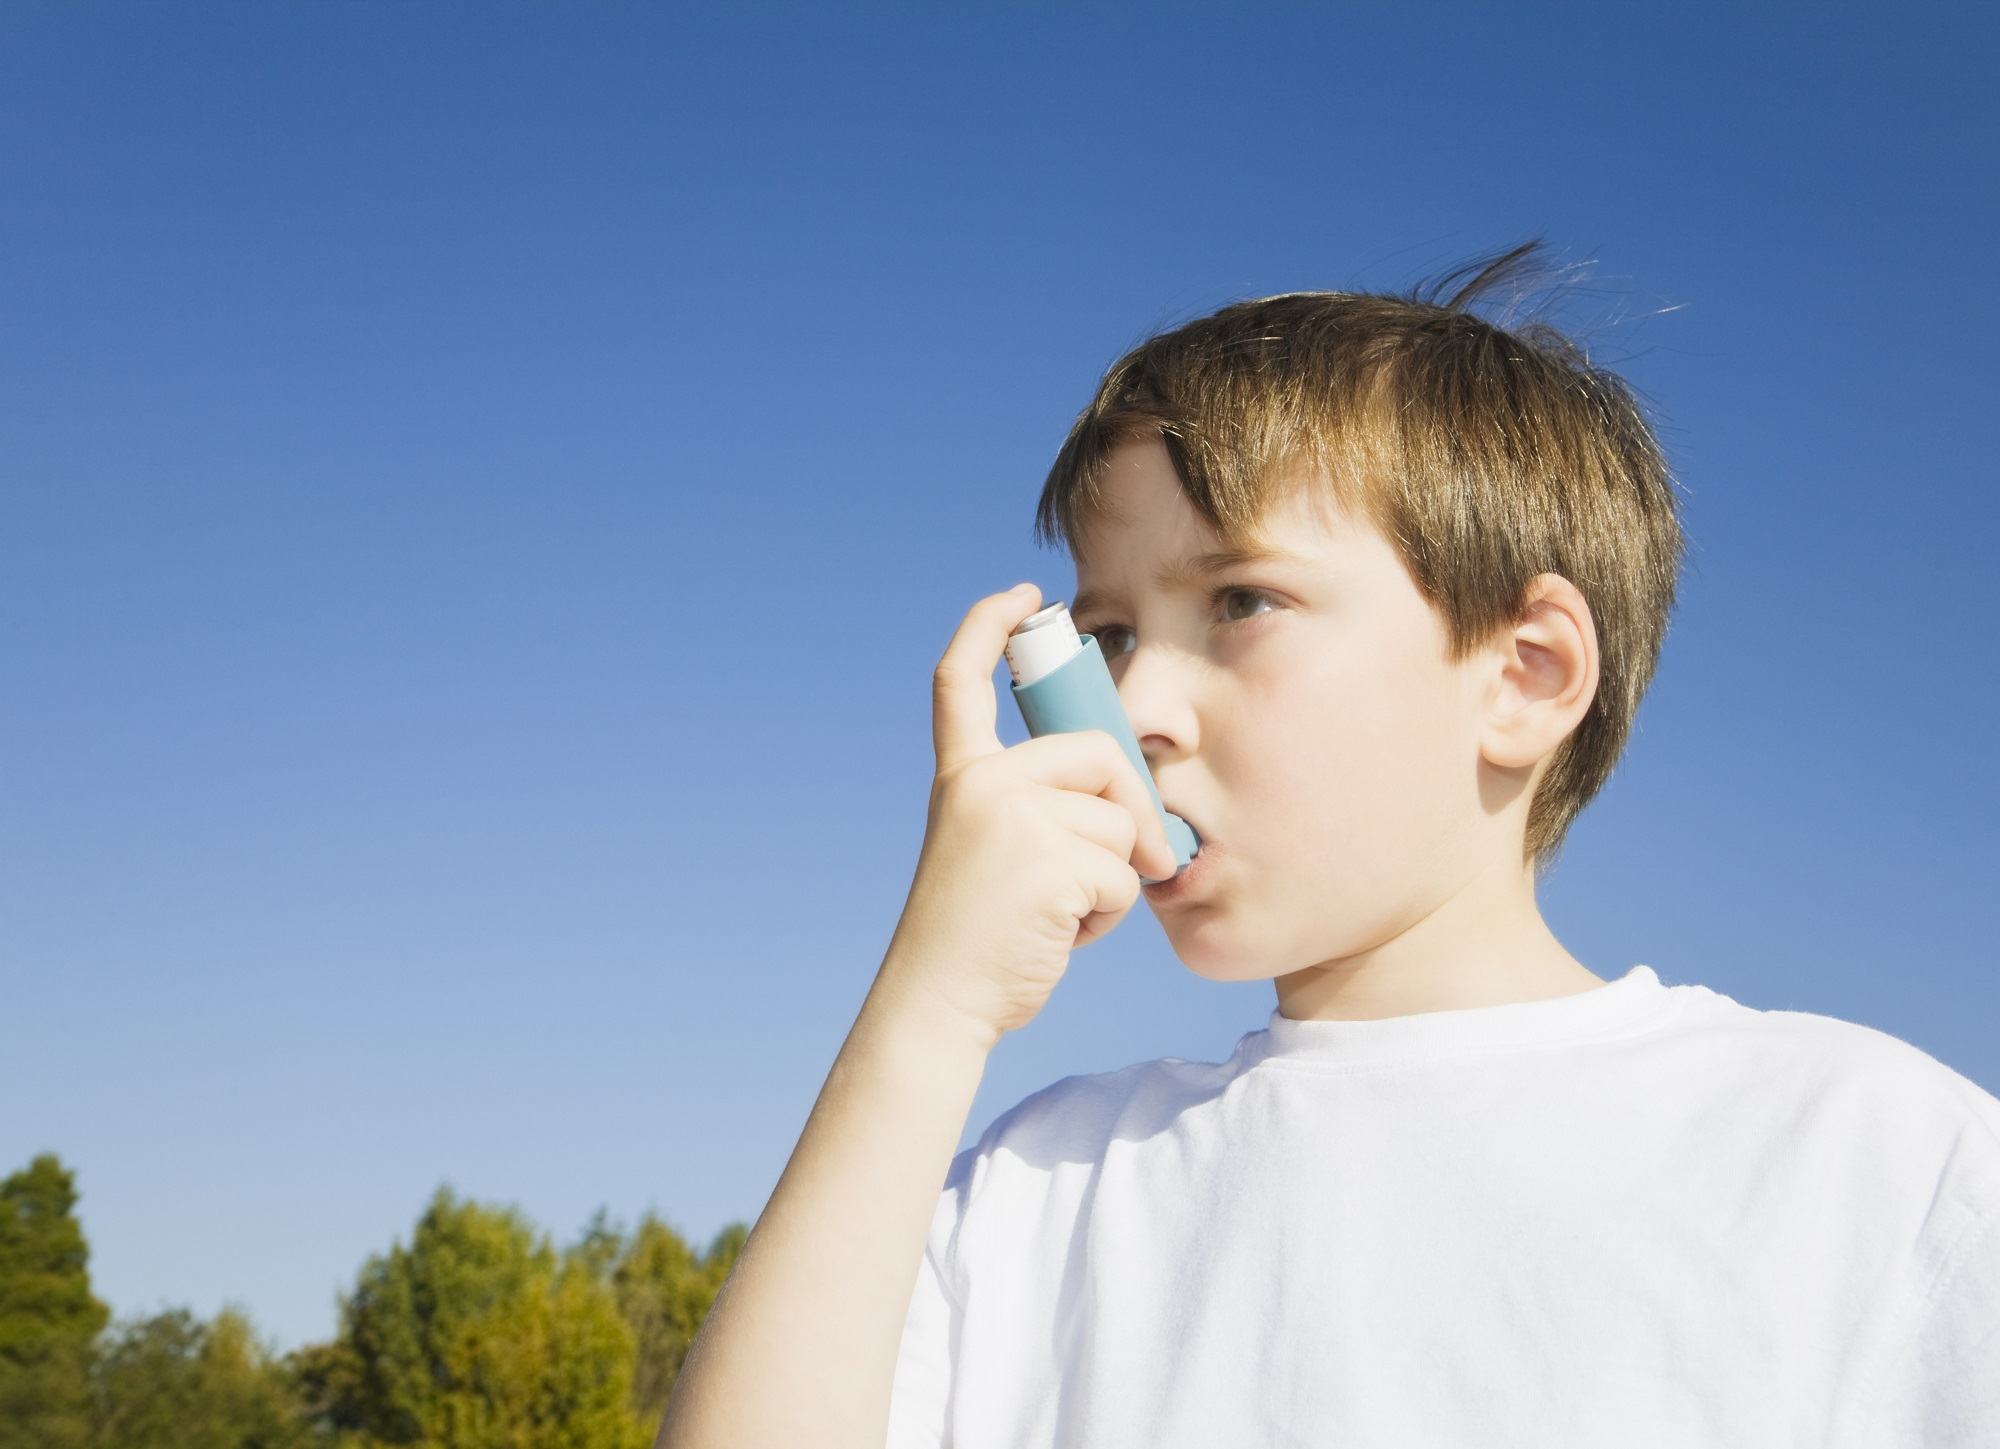 Asthma Risk Increased With Early Onset Persistent